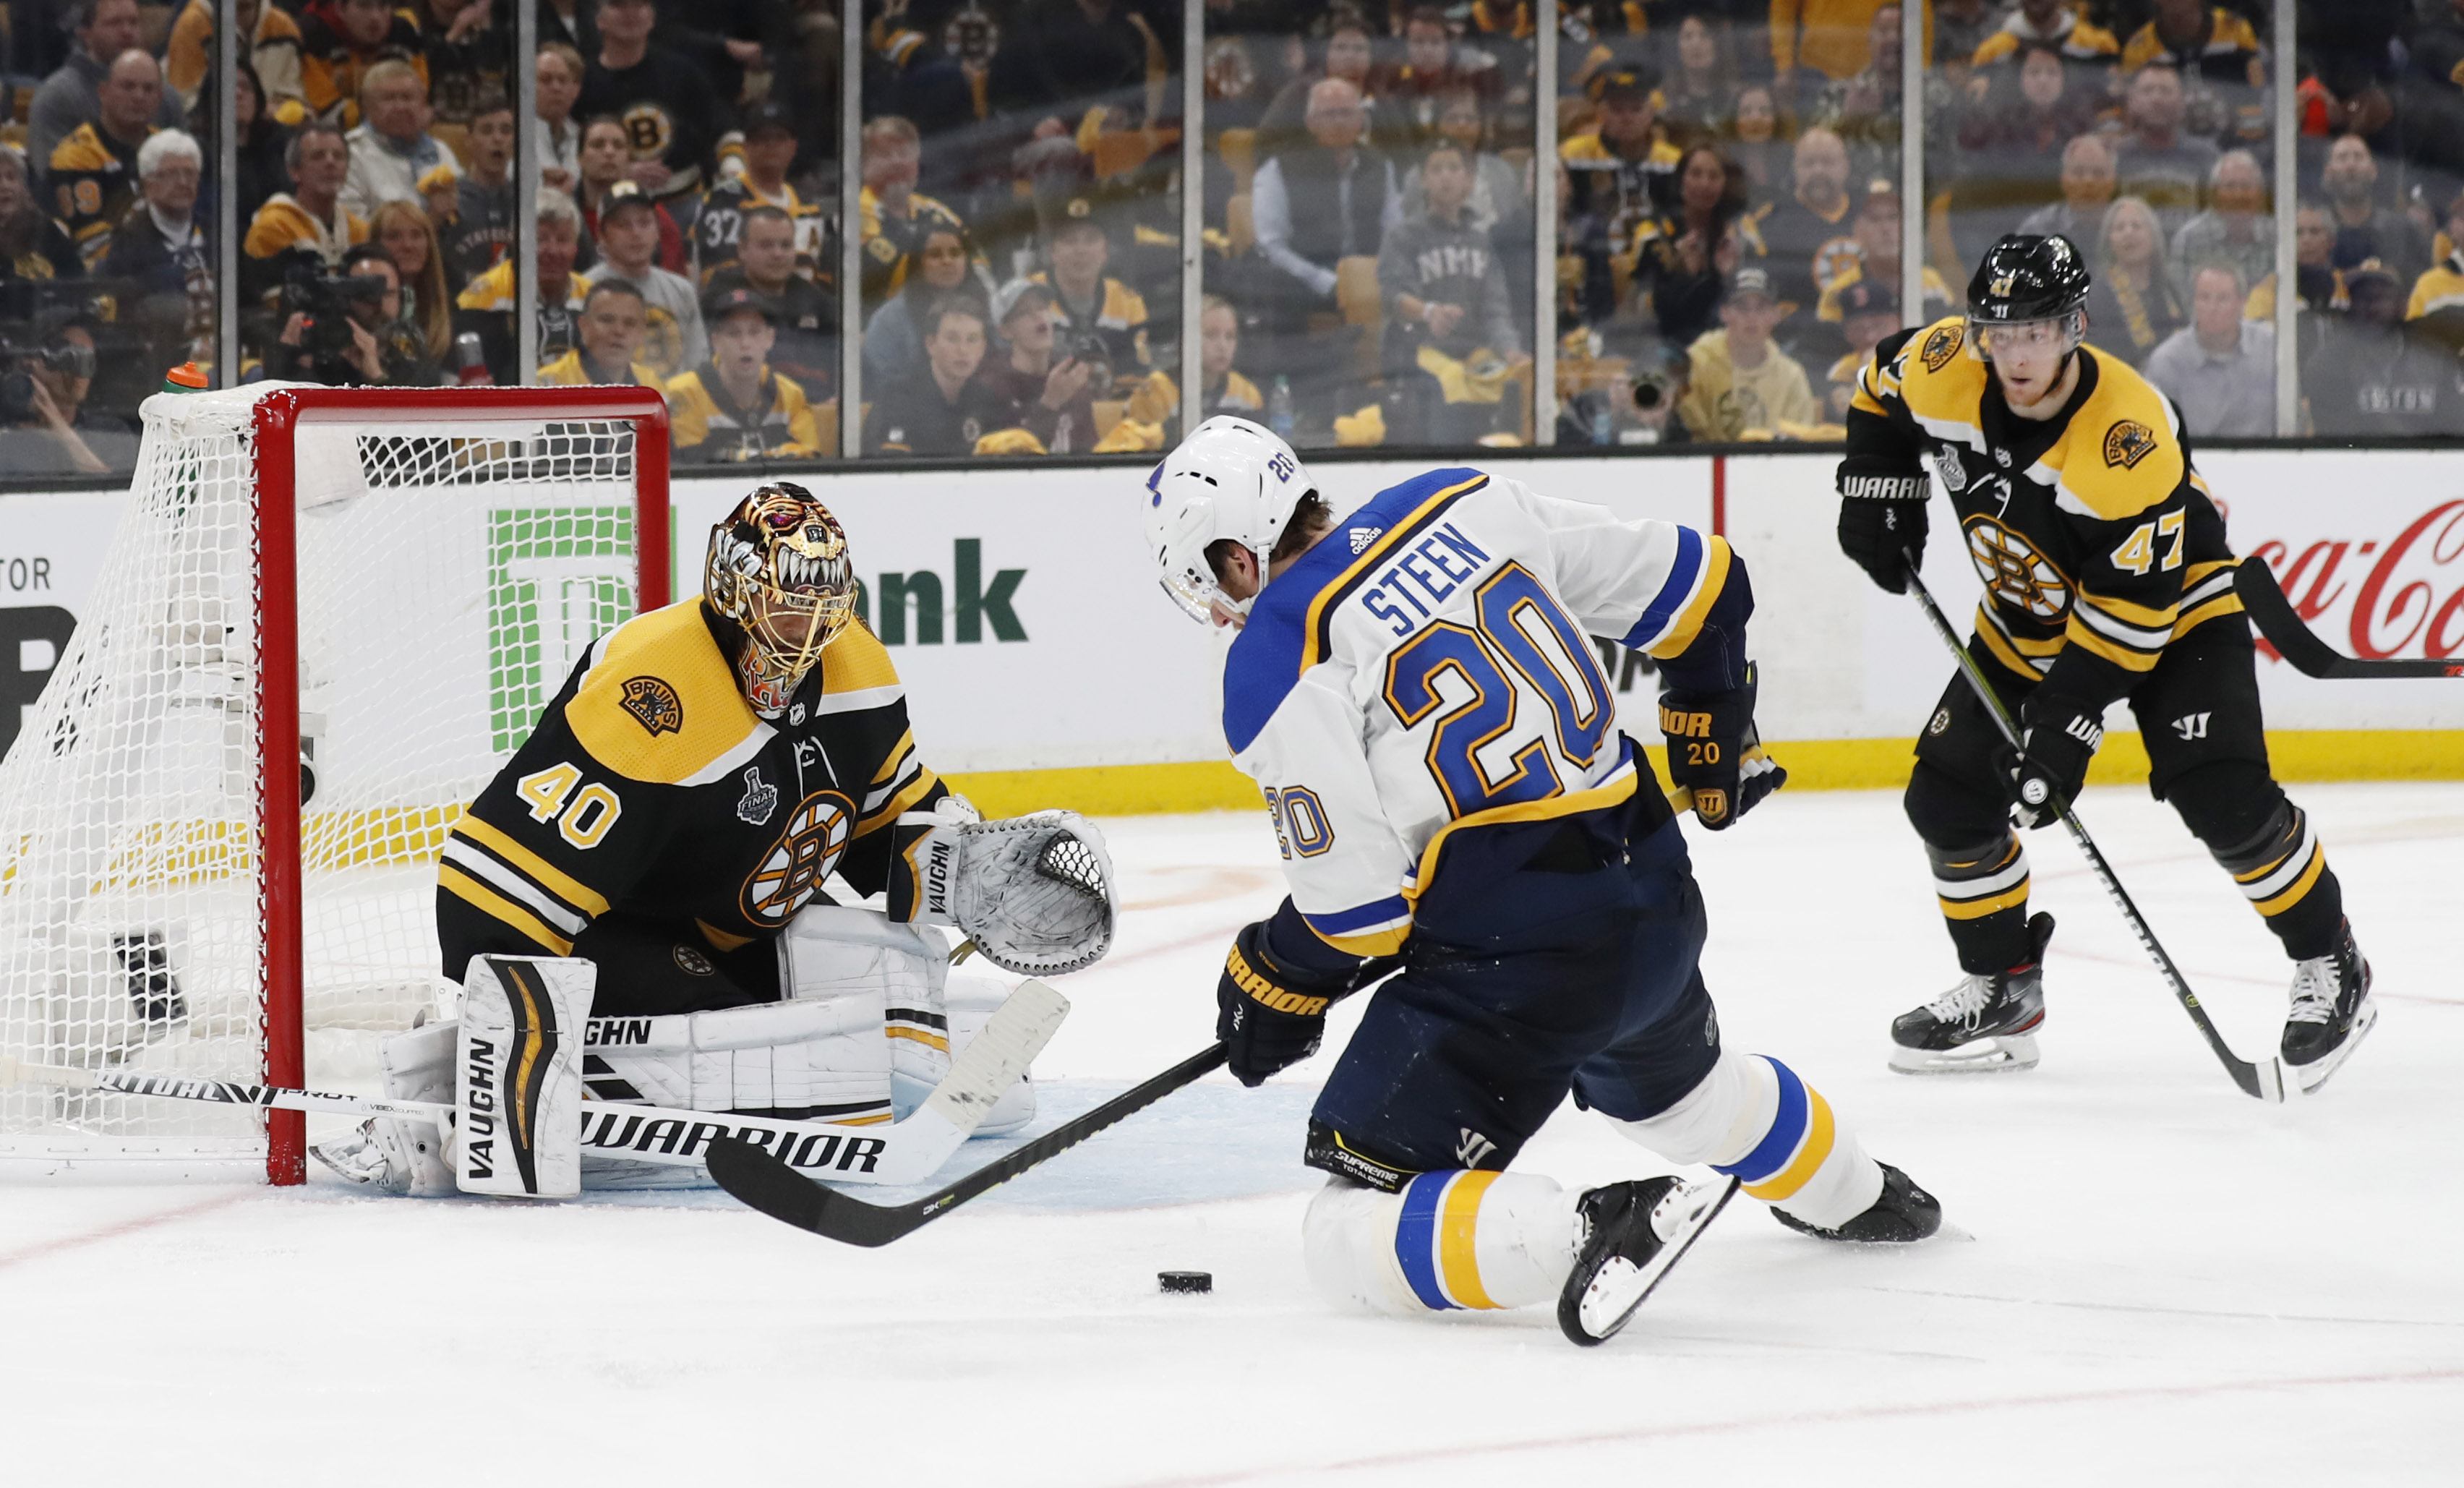 May 29, 2019; Boston, MA, USA; Boston Bruins goaltender Tuukka Rask (40) makes a save against St. Louis Blues left wing Alexander Steen (20) in overtime in game two of the 2019 Stanley Cup Final at TD Garden. Mandatory Credit: Winslow Townson